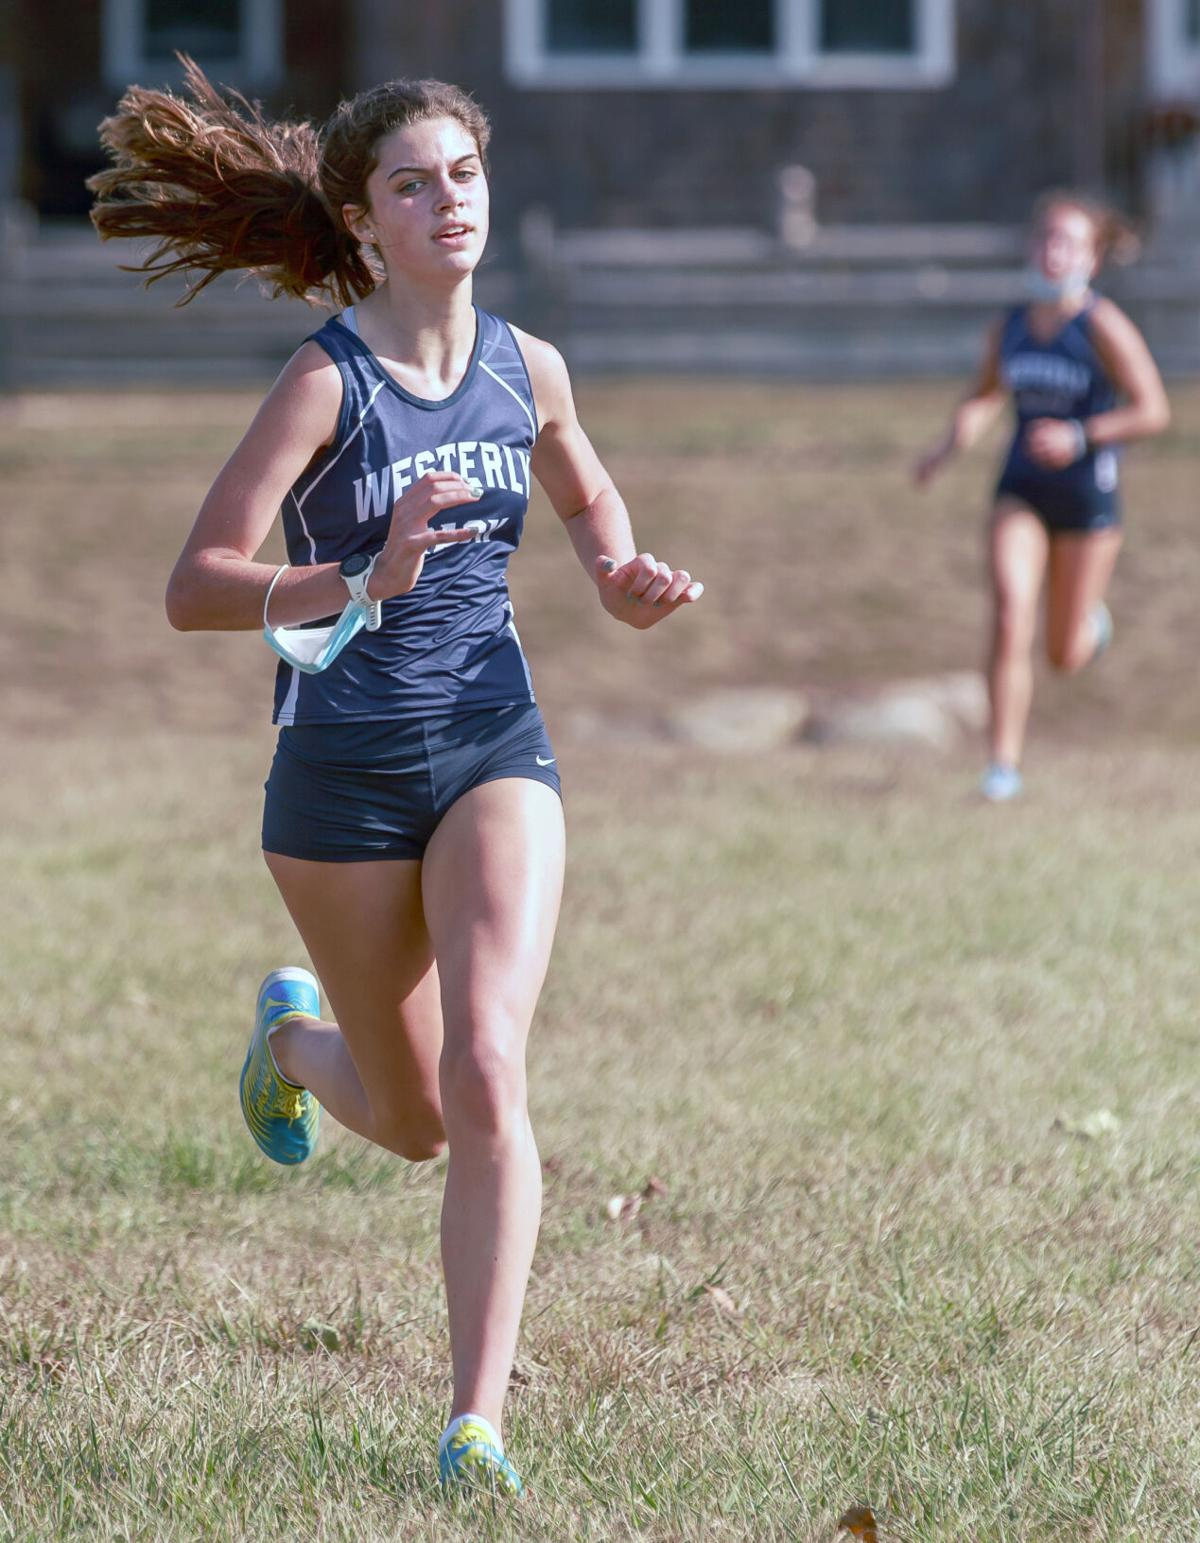 WHS_XCOUNTRY